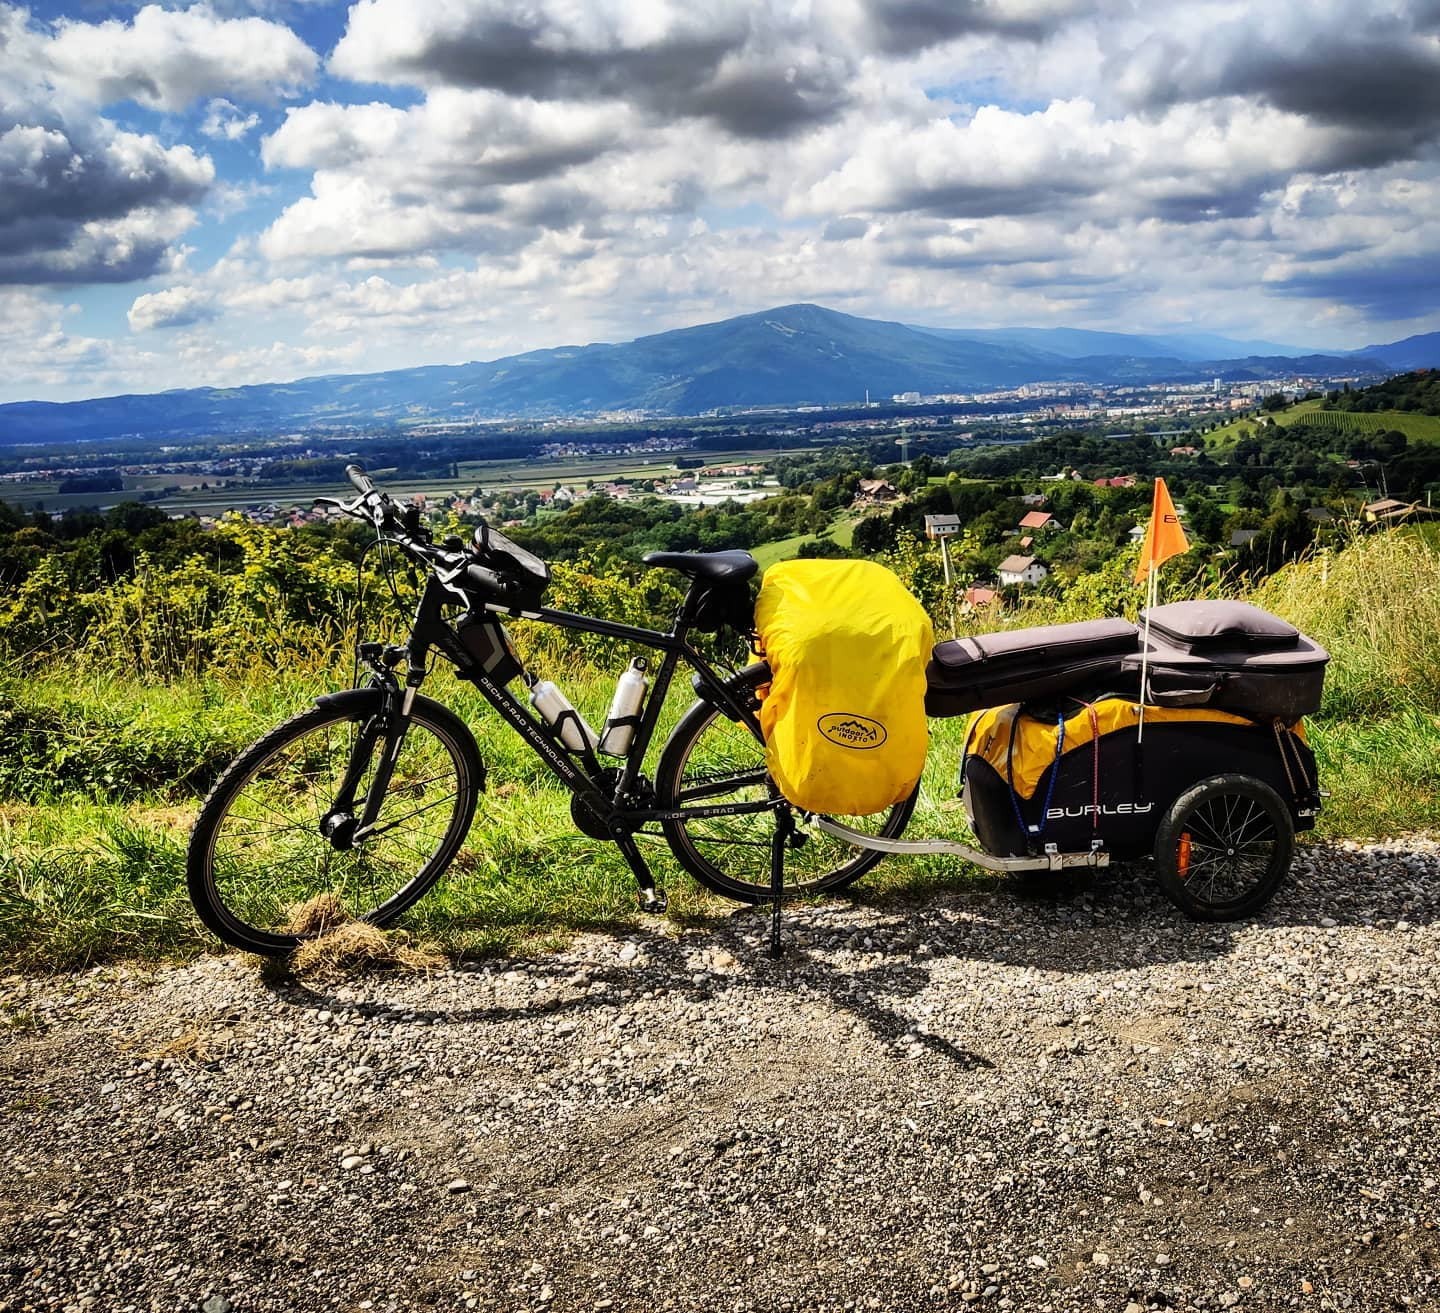 Ride 62 - day 85 - from Zgornja Velka to Celje - 6 September 20